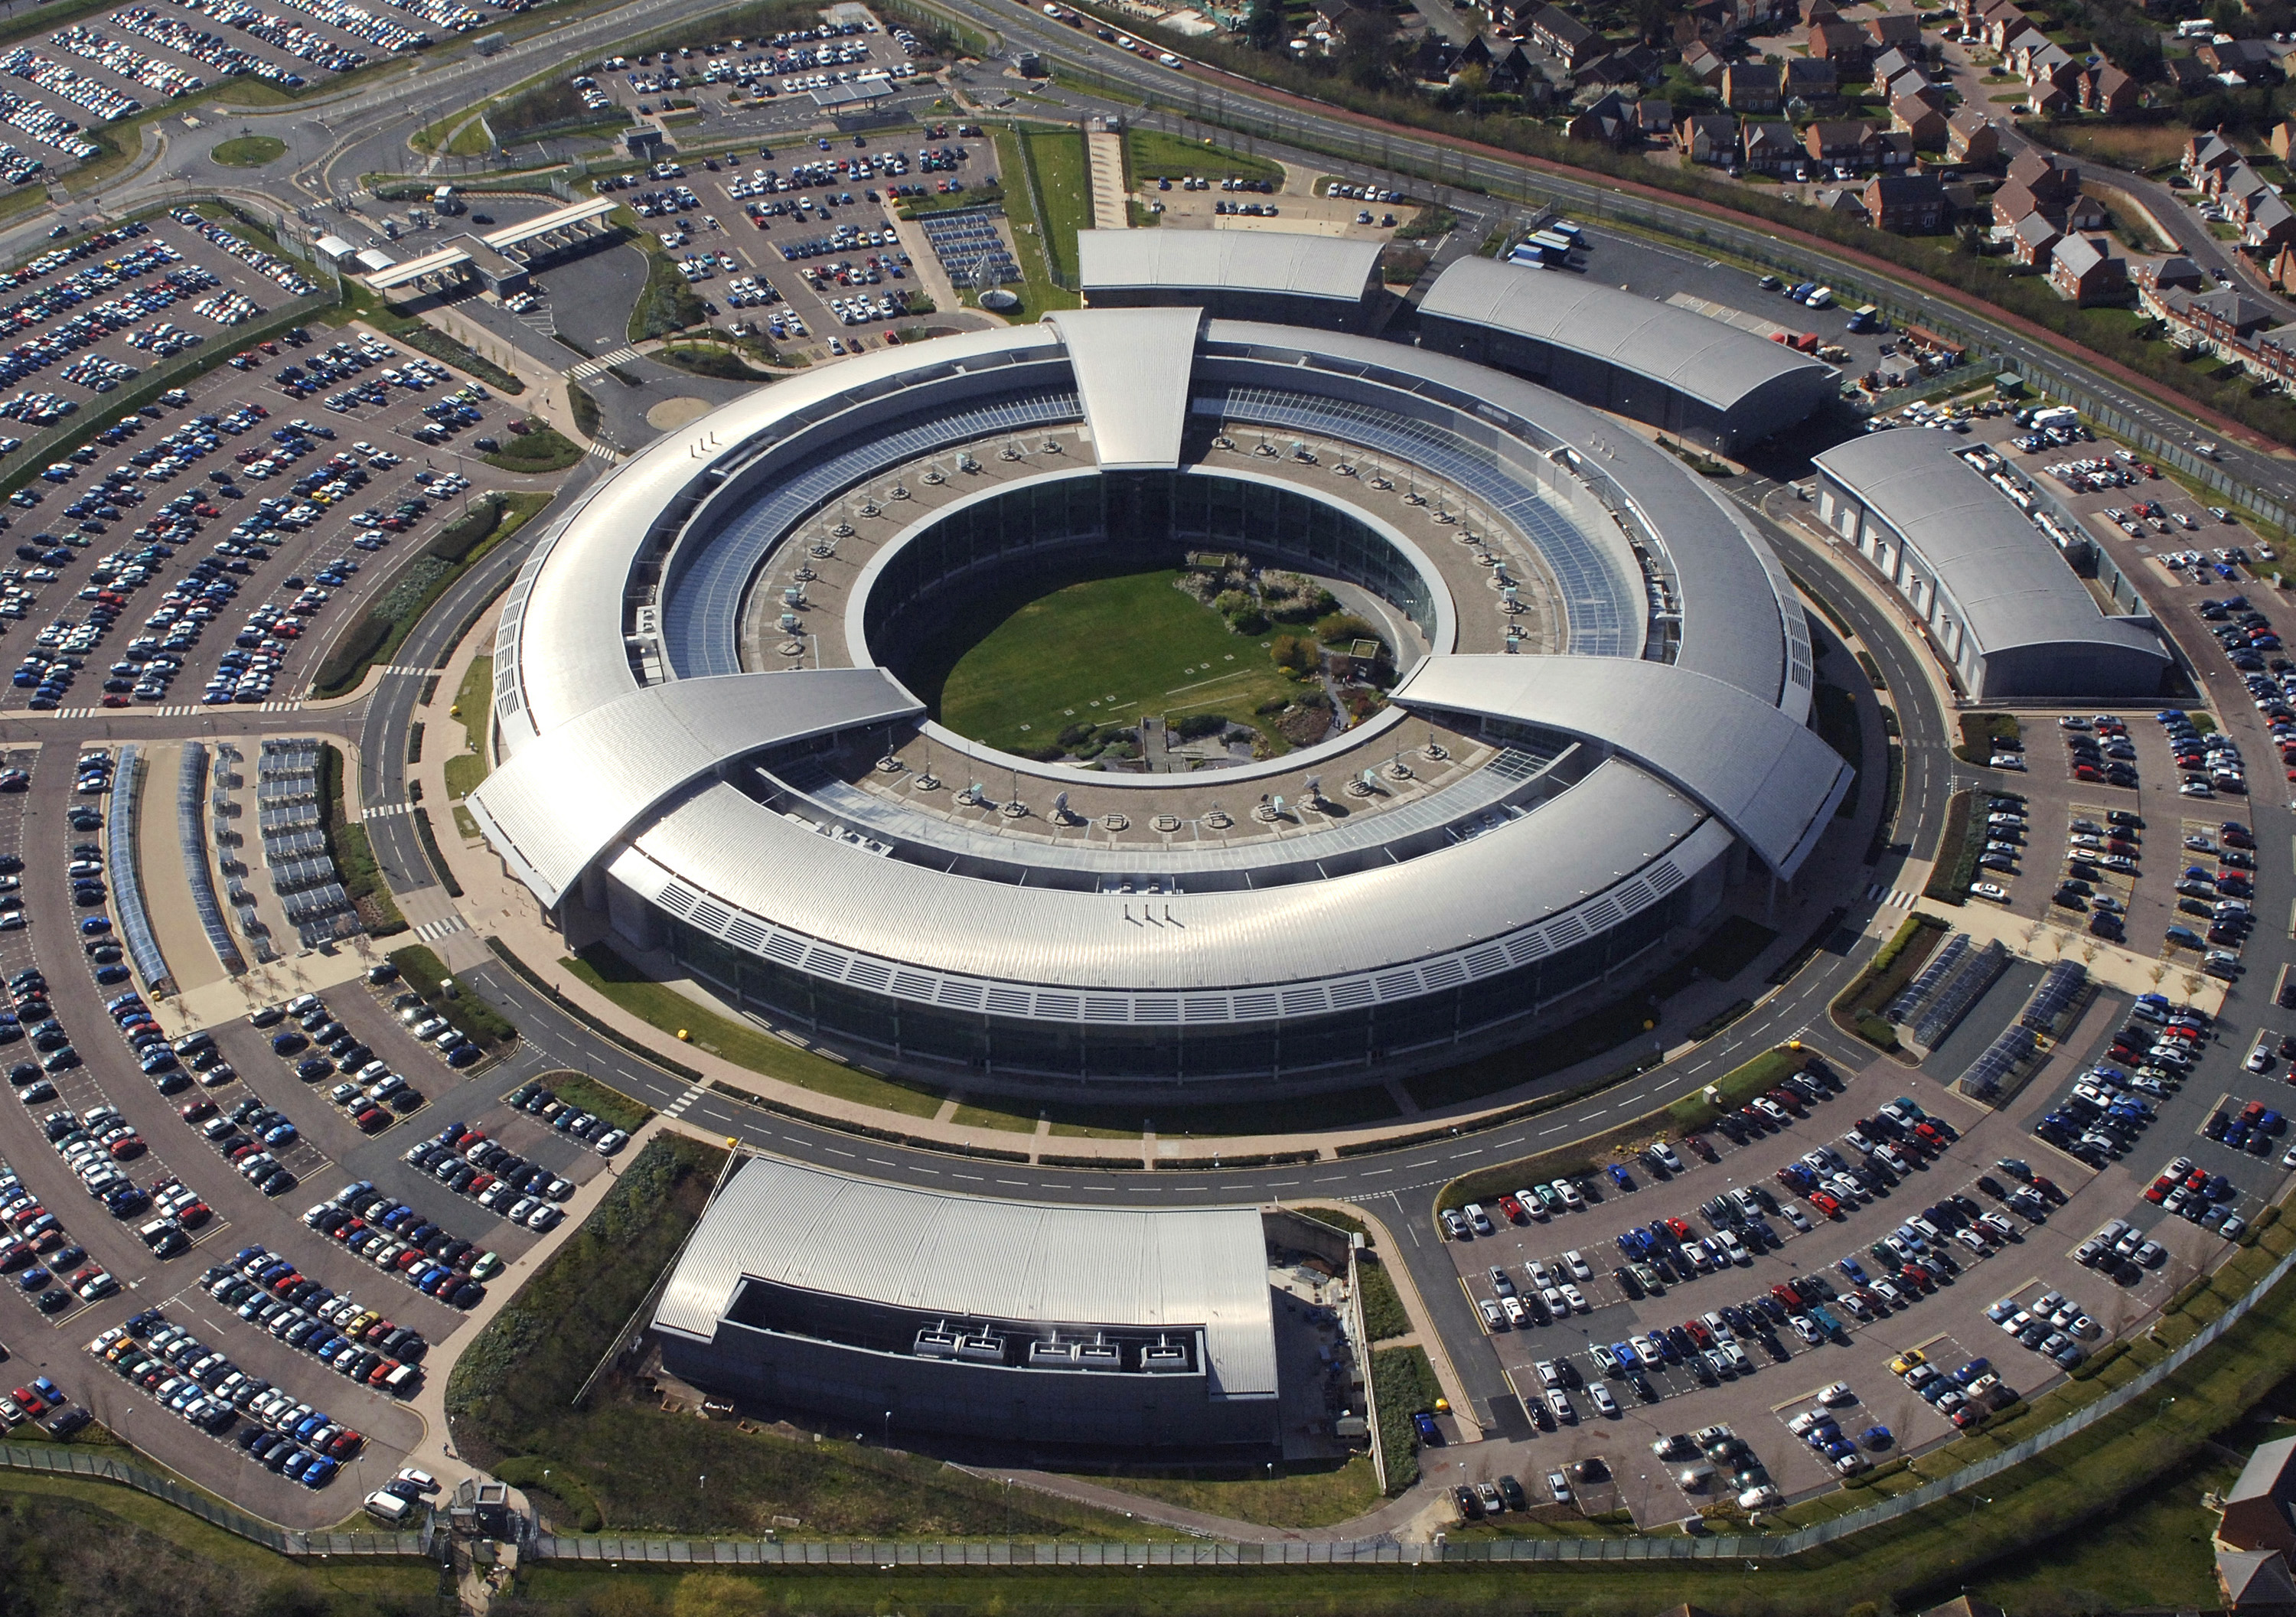 An aerial image of the Government Communications Headquarters (GCHQ) in Cheltenham, Gloucestershire - MOD via Wikimedia